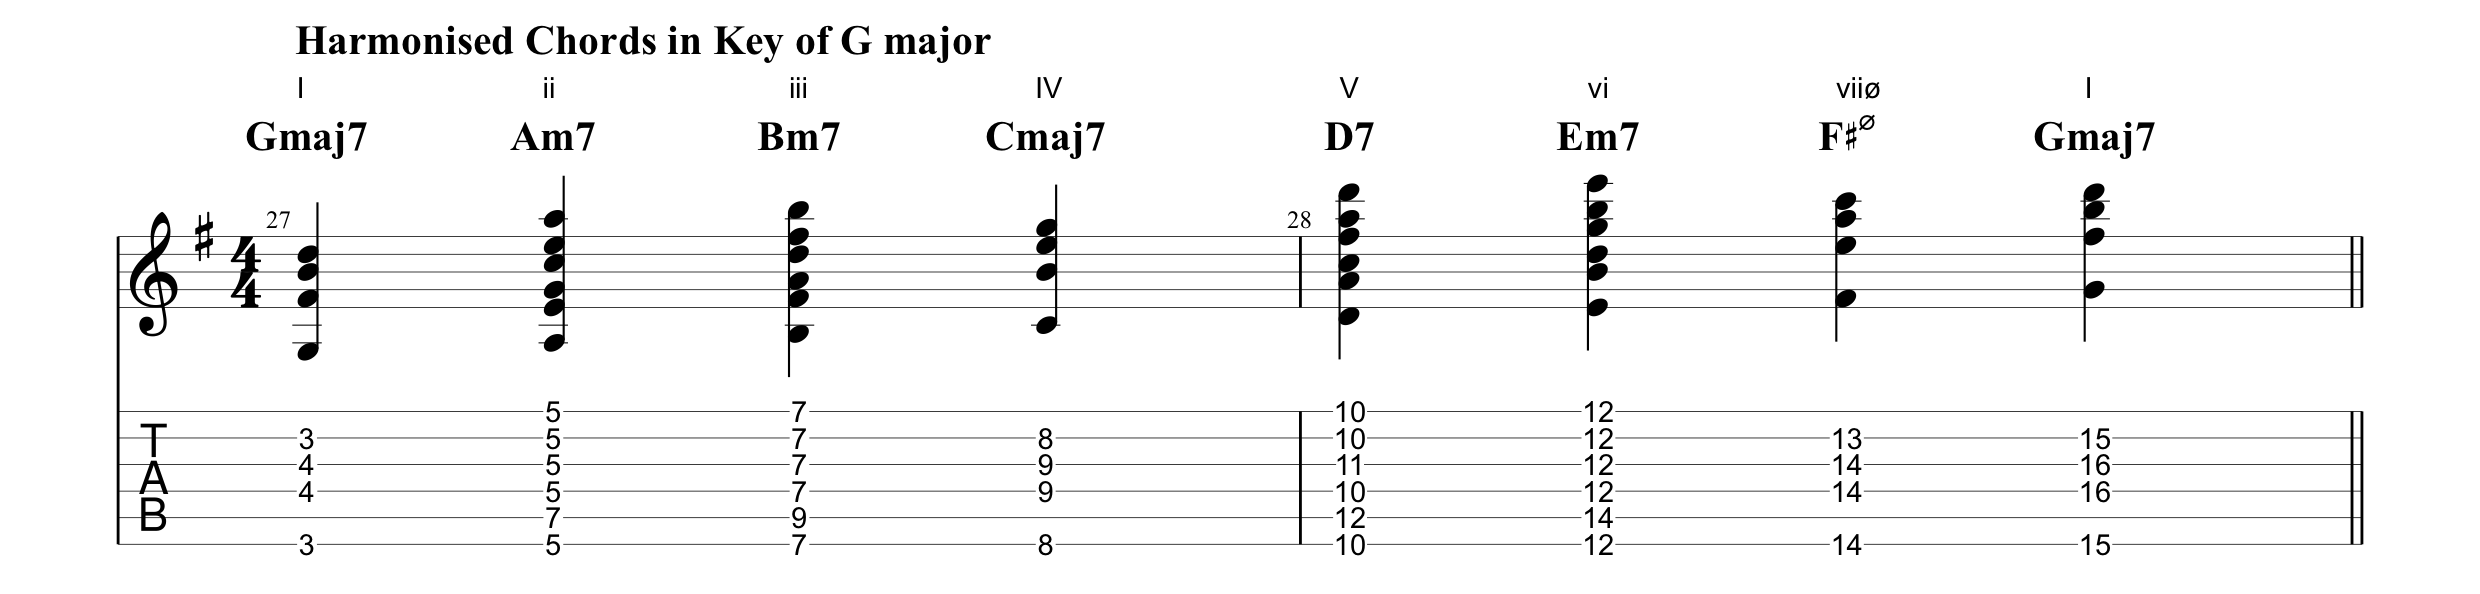 Harmonised Chords in the Key of G major (Gravity).png